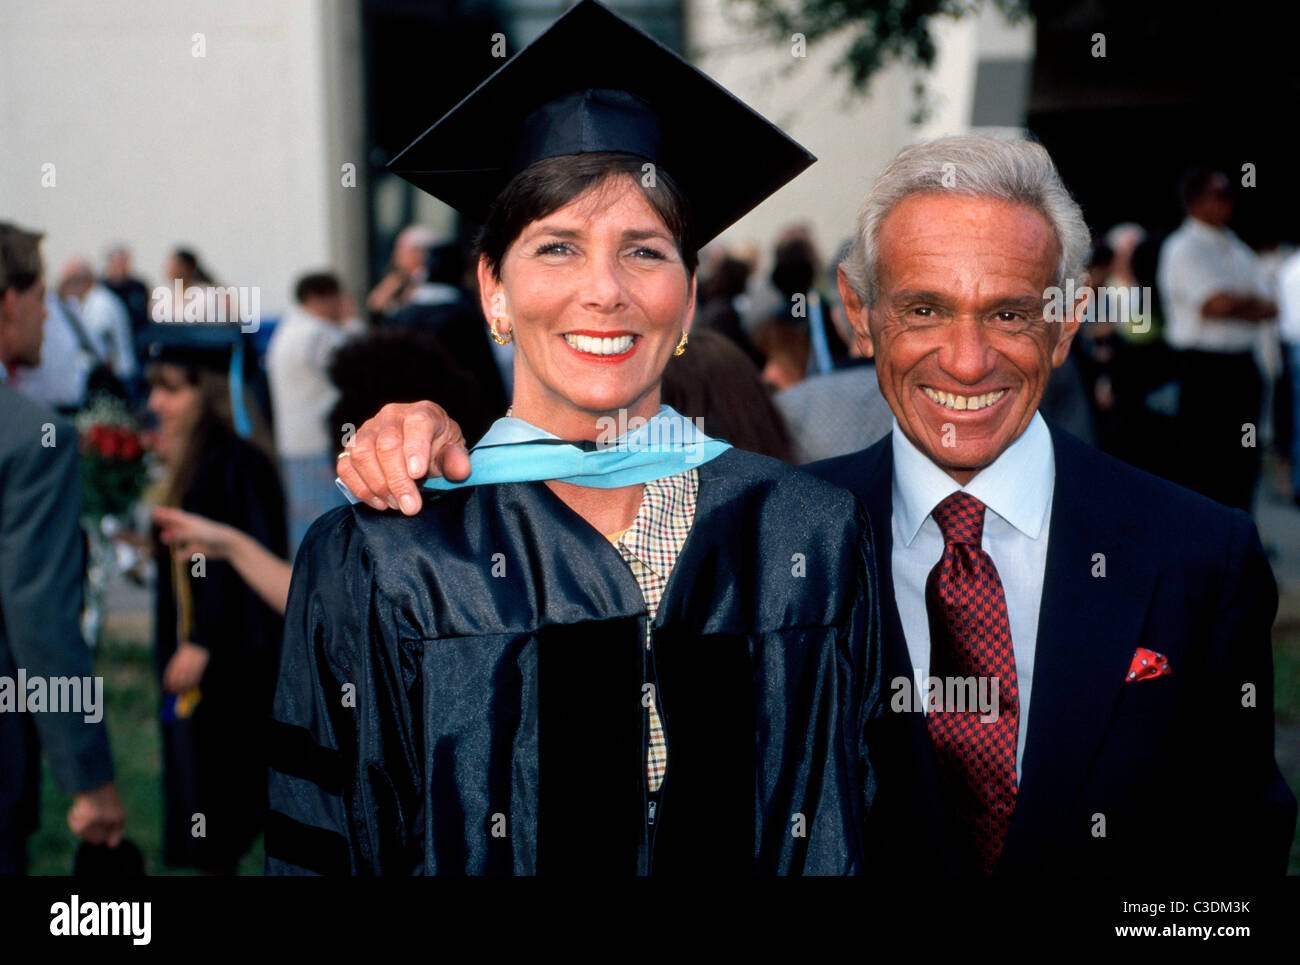 A middle-aged woman in a cap and gown poses with a relative after receiving a degree at Florida Atlantic University - Stock Image